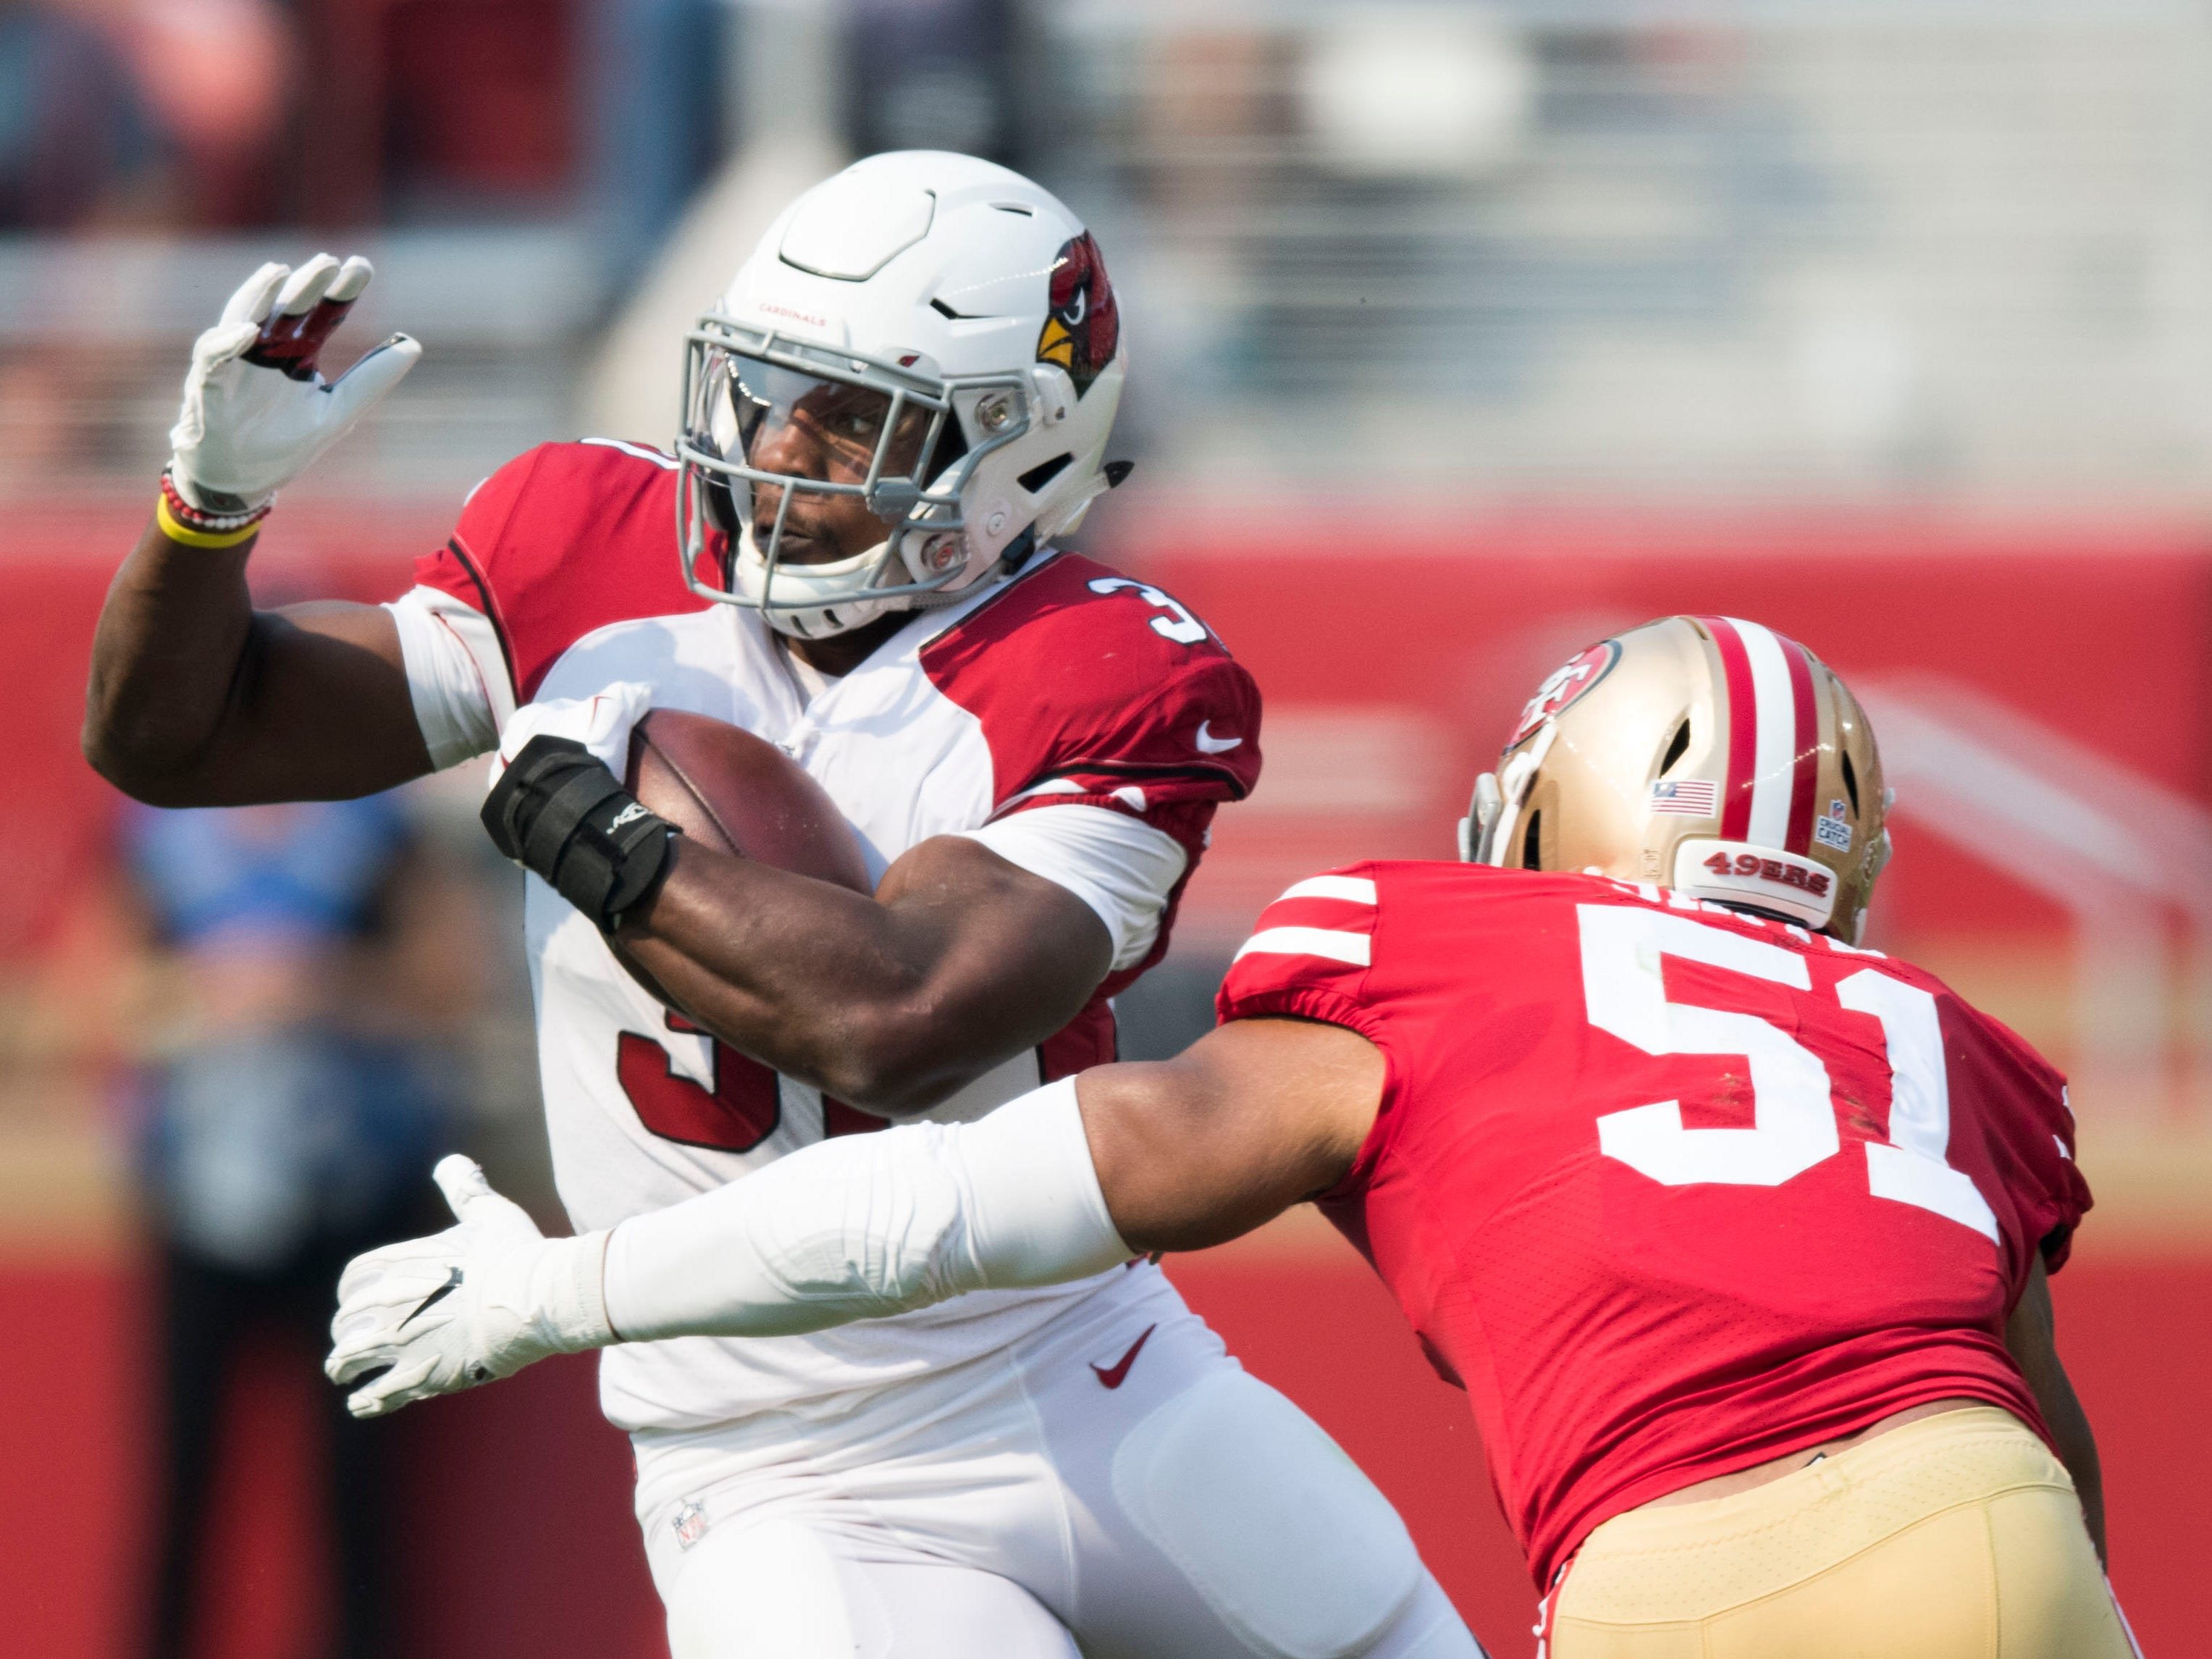 31. Cardinals (32): Still hard to believe a team with David Johnson would rank last in total yards and rushing yards per game at this stage of season.